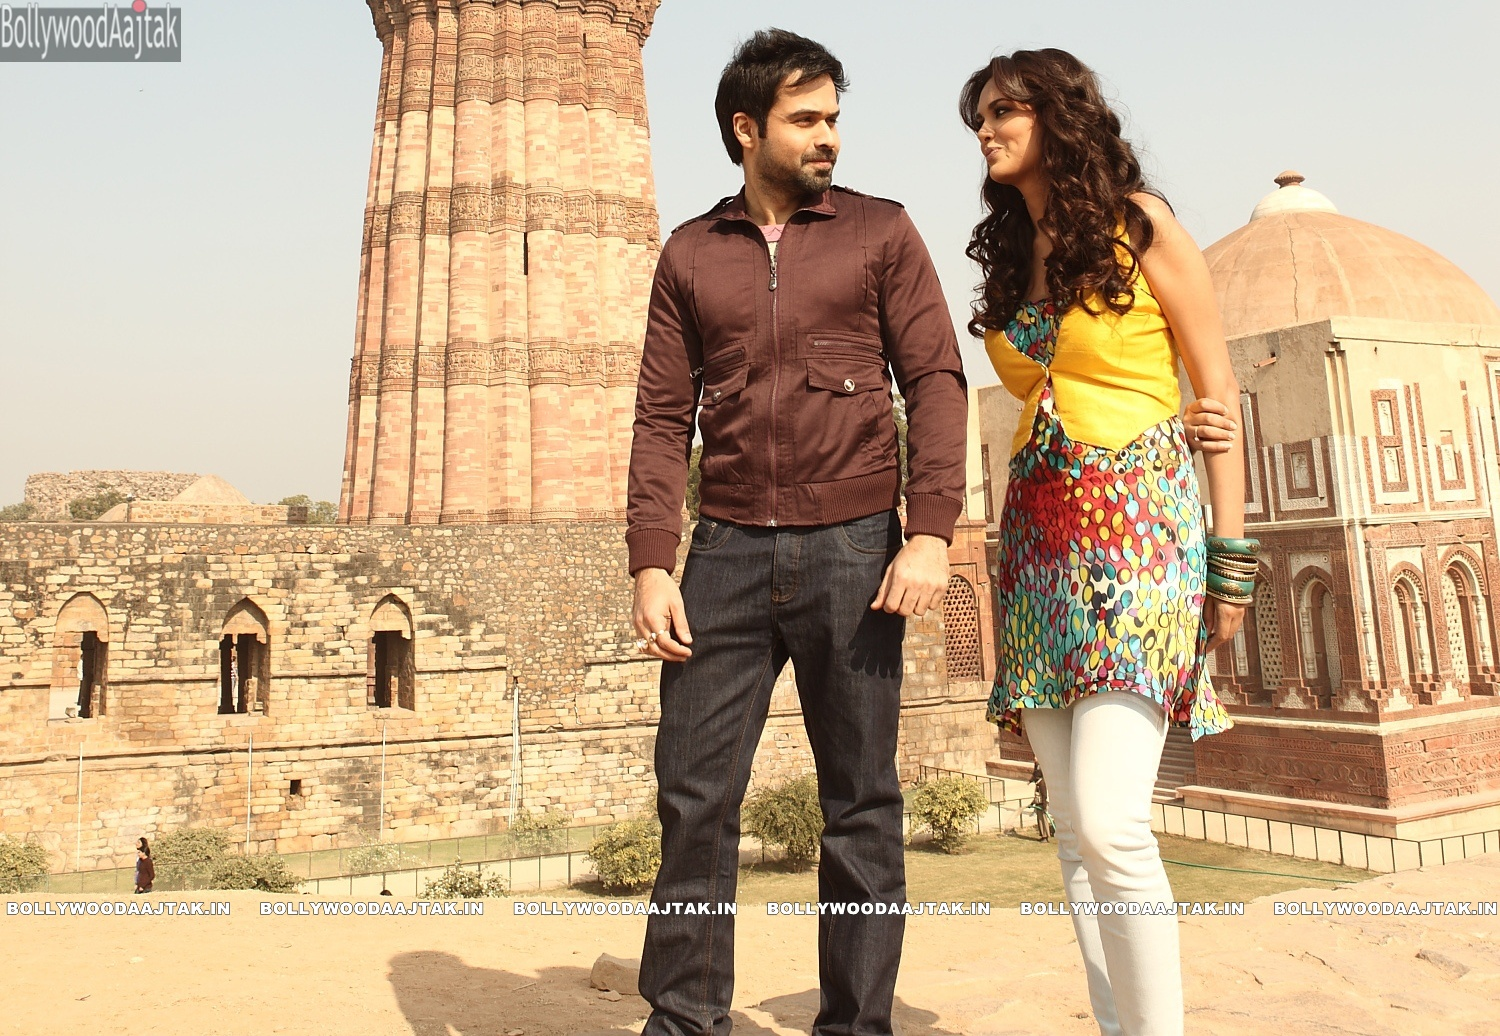 http://3.bp.blogspot.com/-ugLPWGbv1qE/T_wciVqL18I/AAAAAAAAO2k/6oykGc7Y-PQ/s1600/Movie-Jannat-2-wallpapers-4.jpg